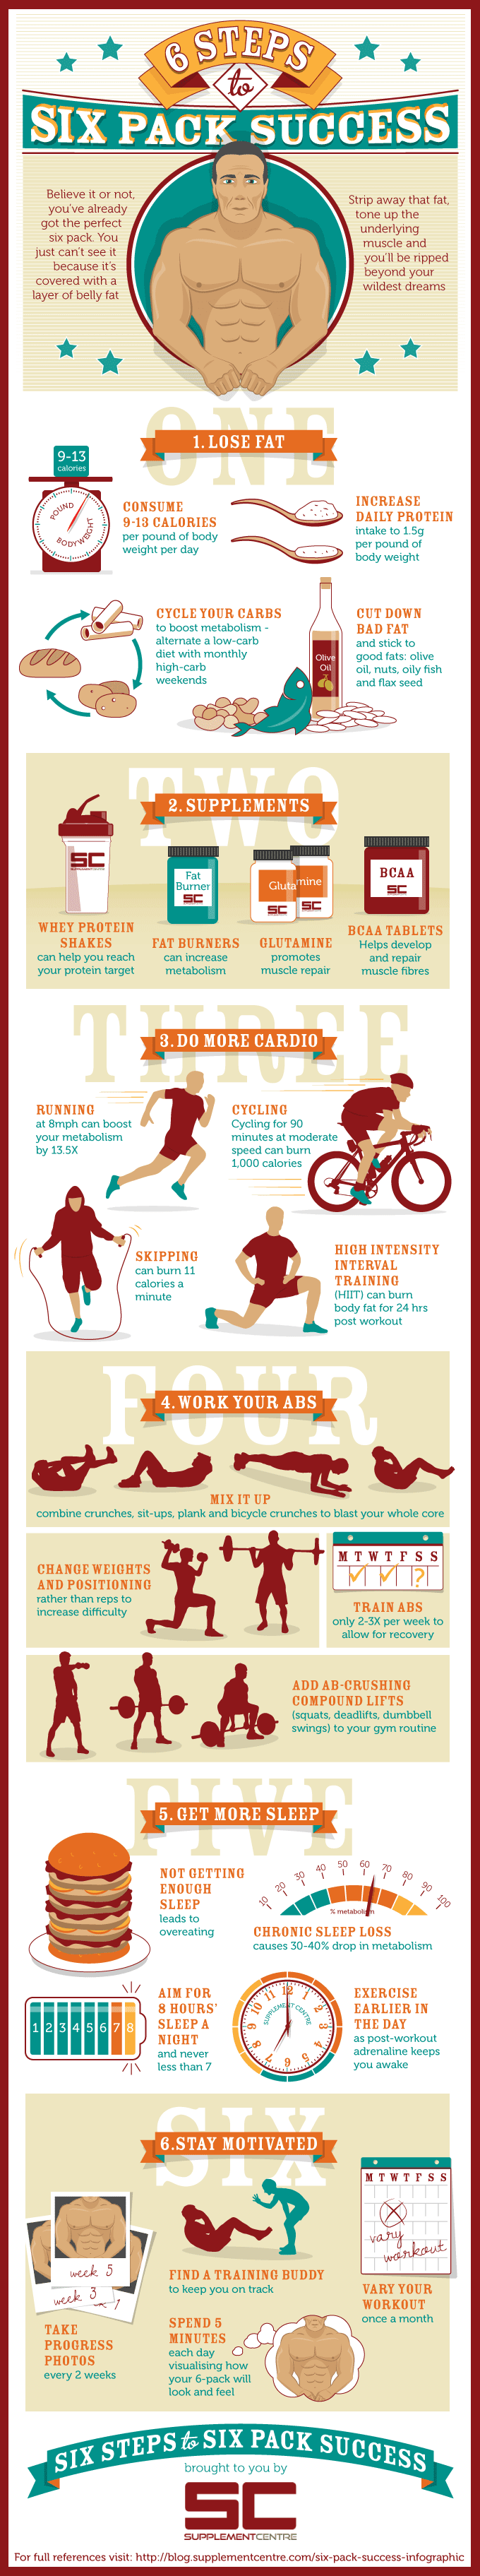 Infographic: 6 Steps to Six Pack Success